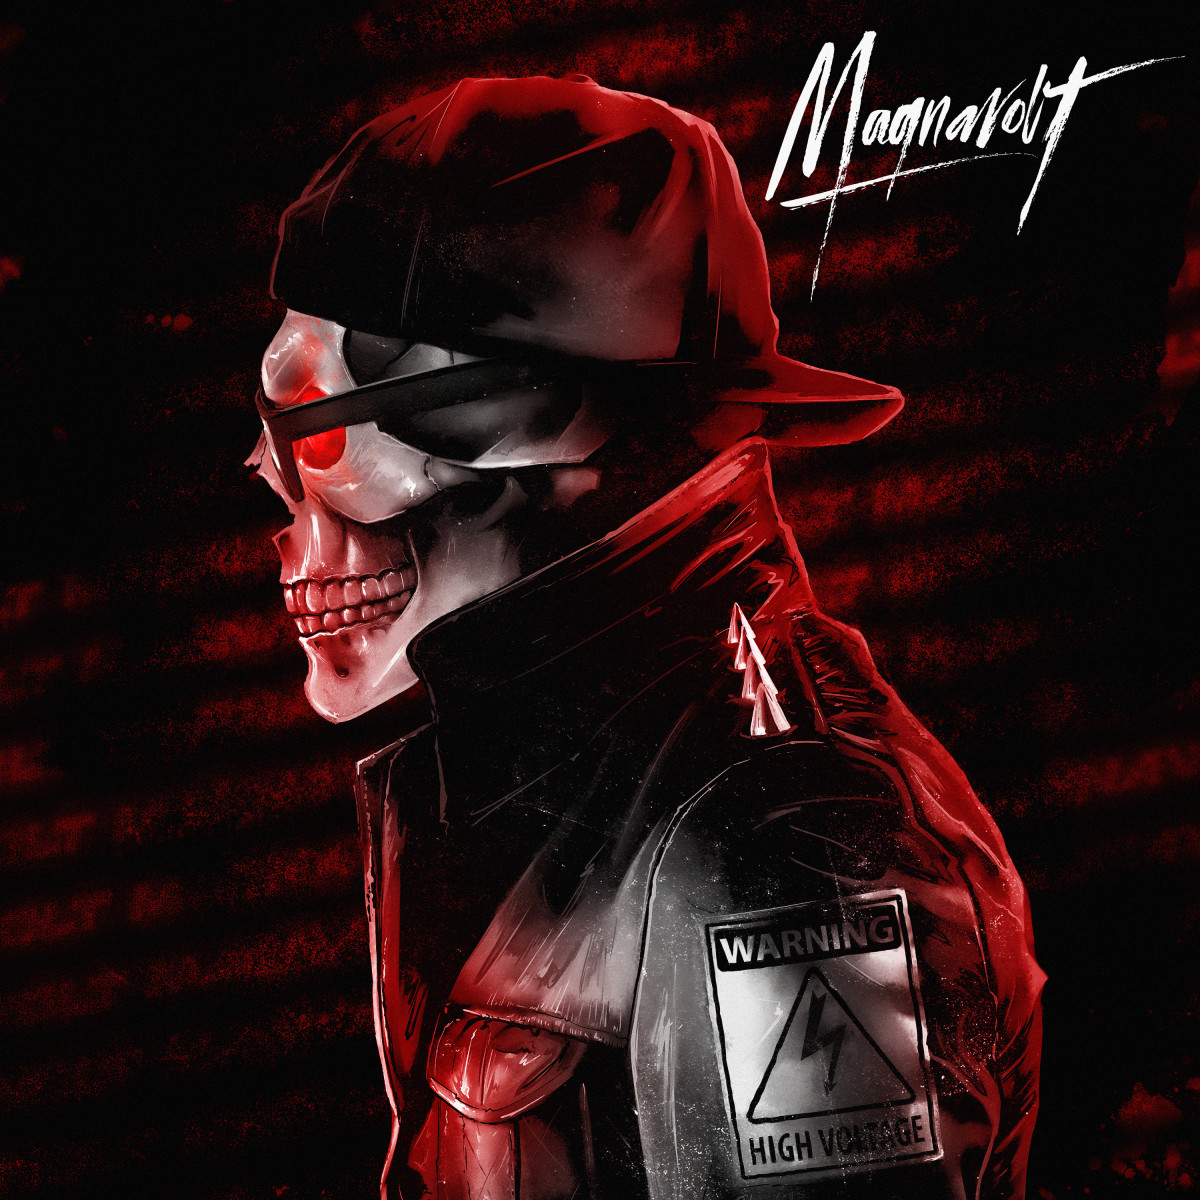 an-interview-with-synthwave-producer-magna-volt